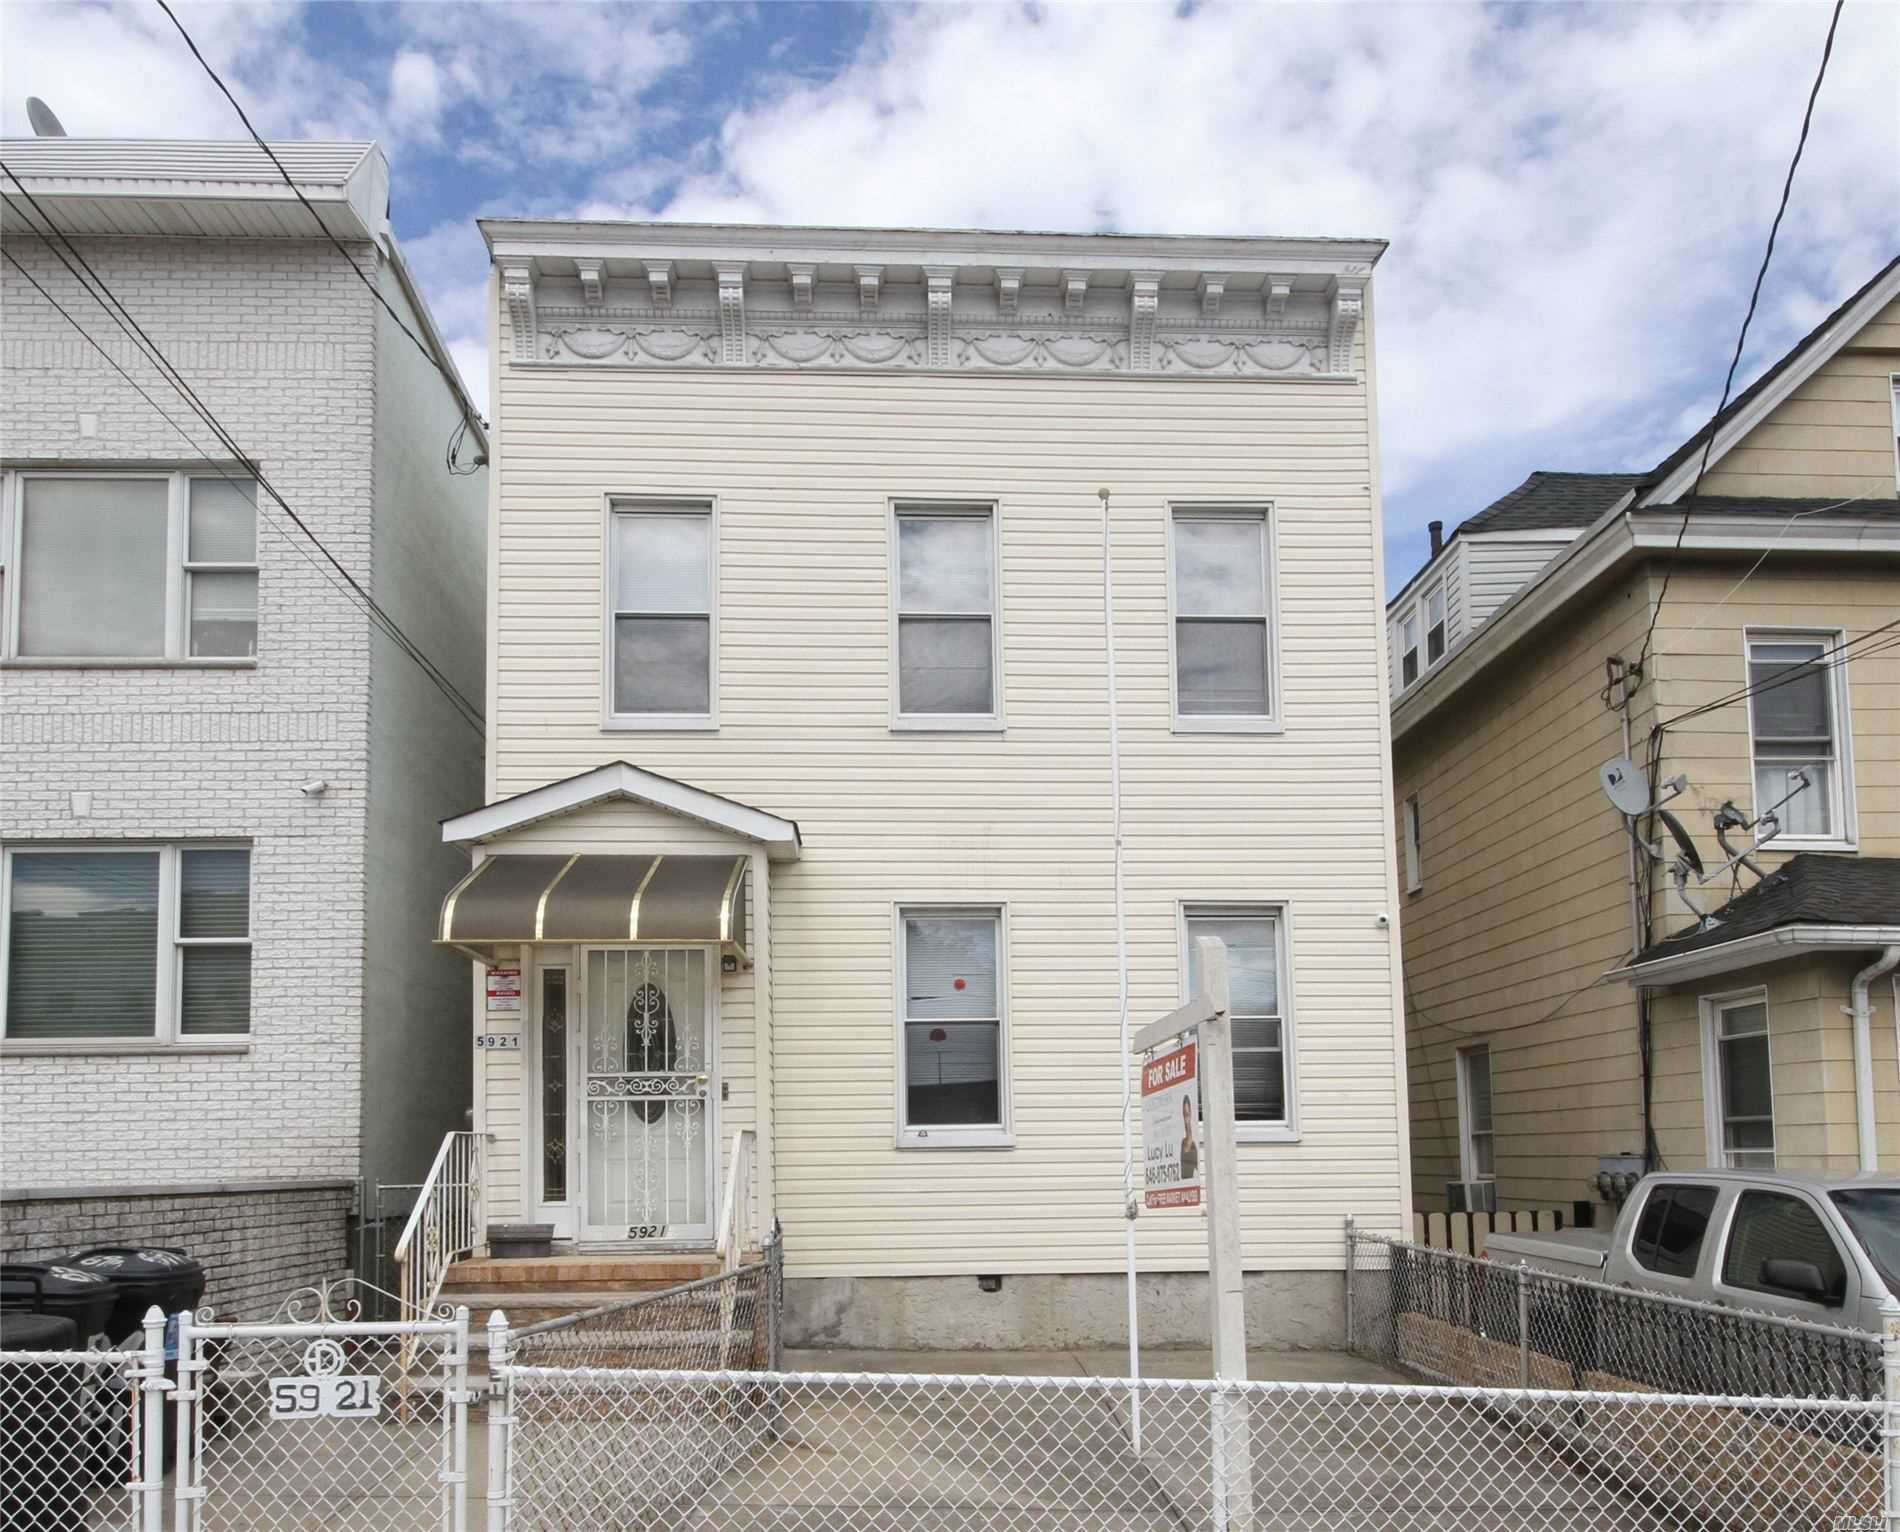 Property for sale at 59-21 69th Place, Maspeth NY 11378, Maspeth,  New York 11378